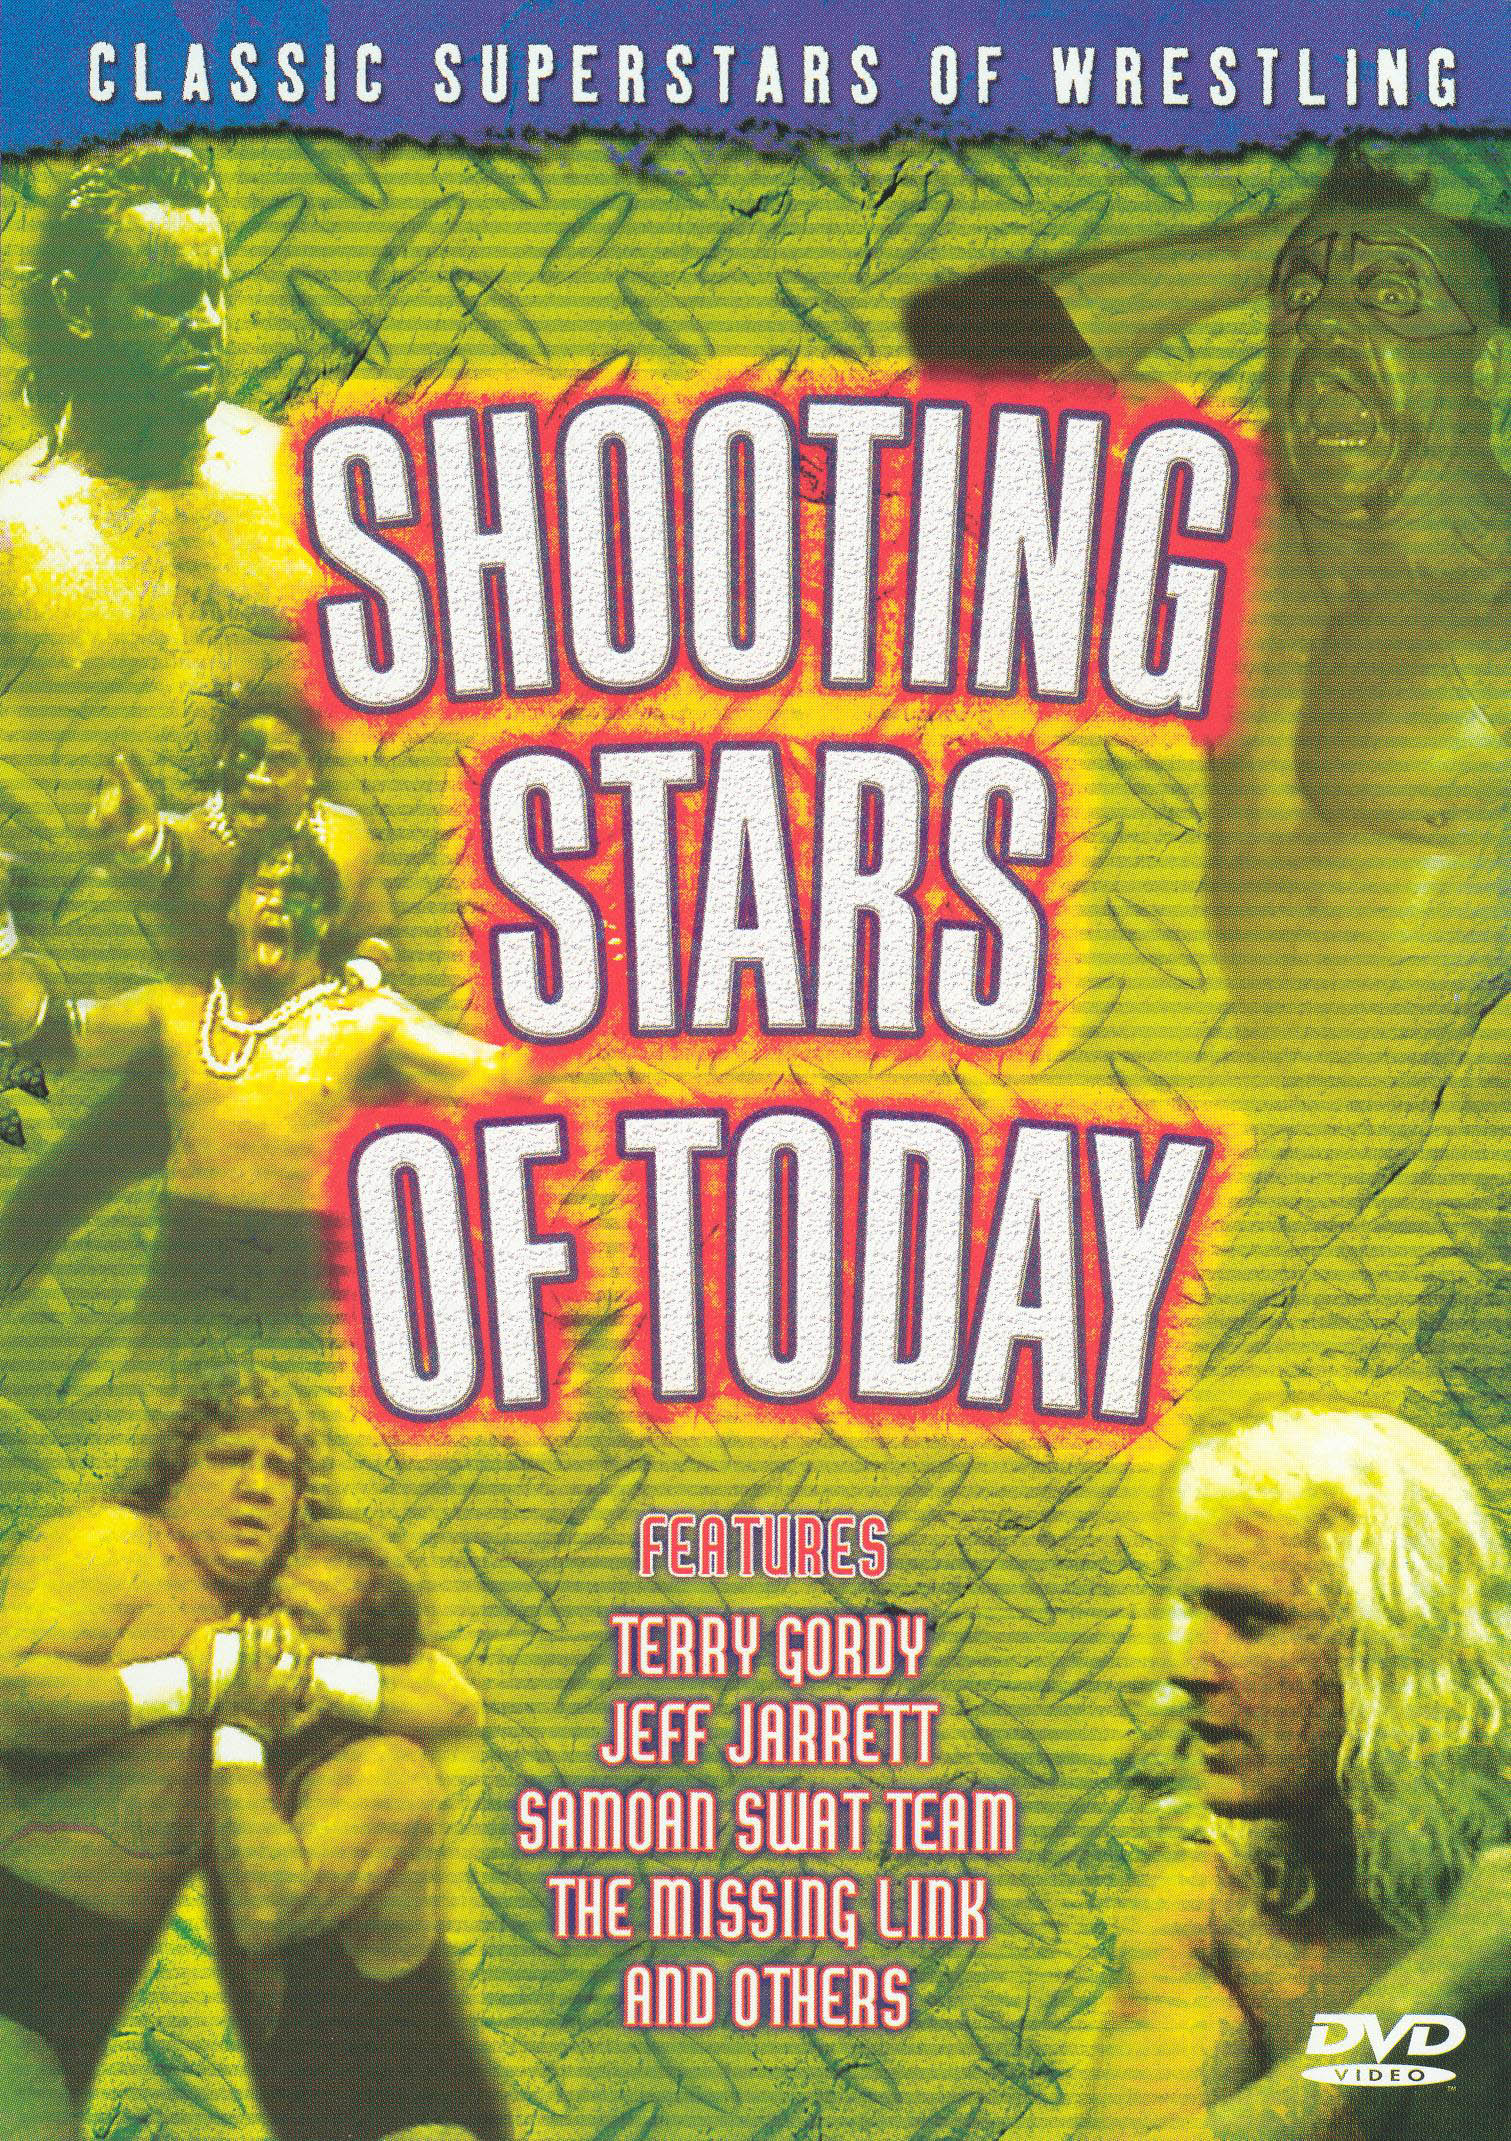 Classic Superstars of Wrestling: Shooting Stars of Today